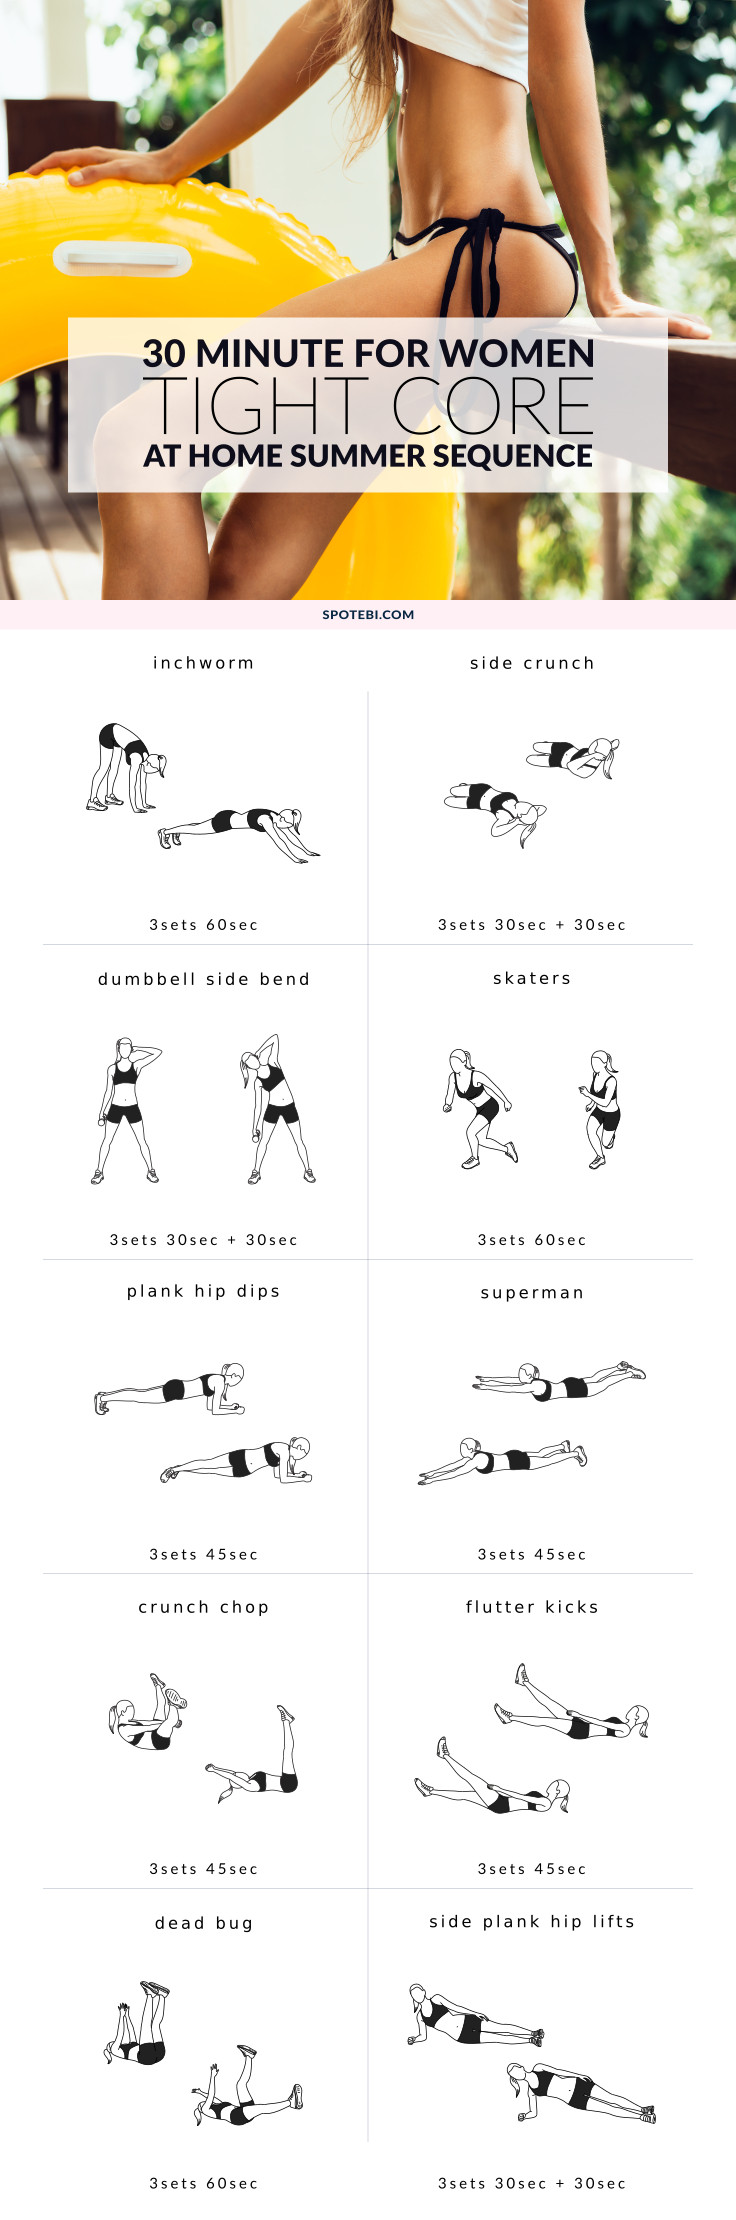 To get a toned belly and a small waist, women need to target all layers of muscles and hit the midsection from different angles. This Tight Core Summer Workout is designed to cinch your waist, strengthen your core and give you a tighter tummy! https://www.spotebi.com/workout-routines/30-minute-tight-core-summer-workout/